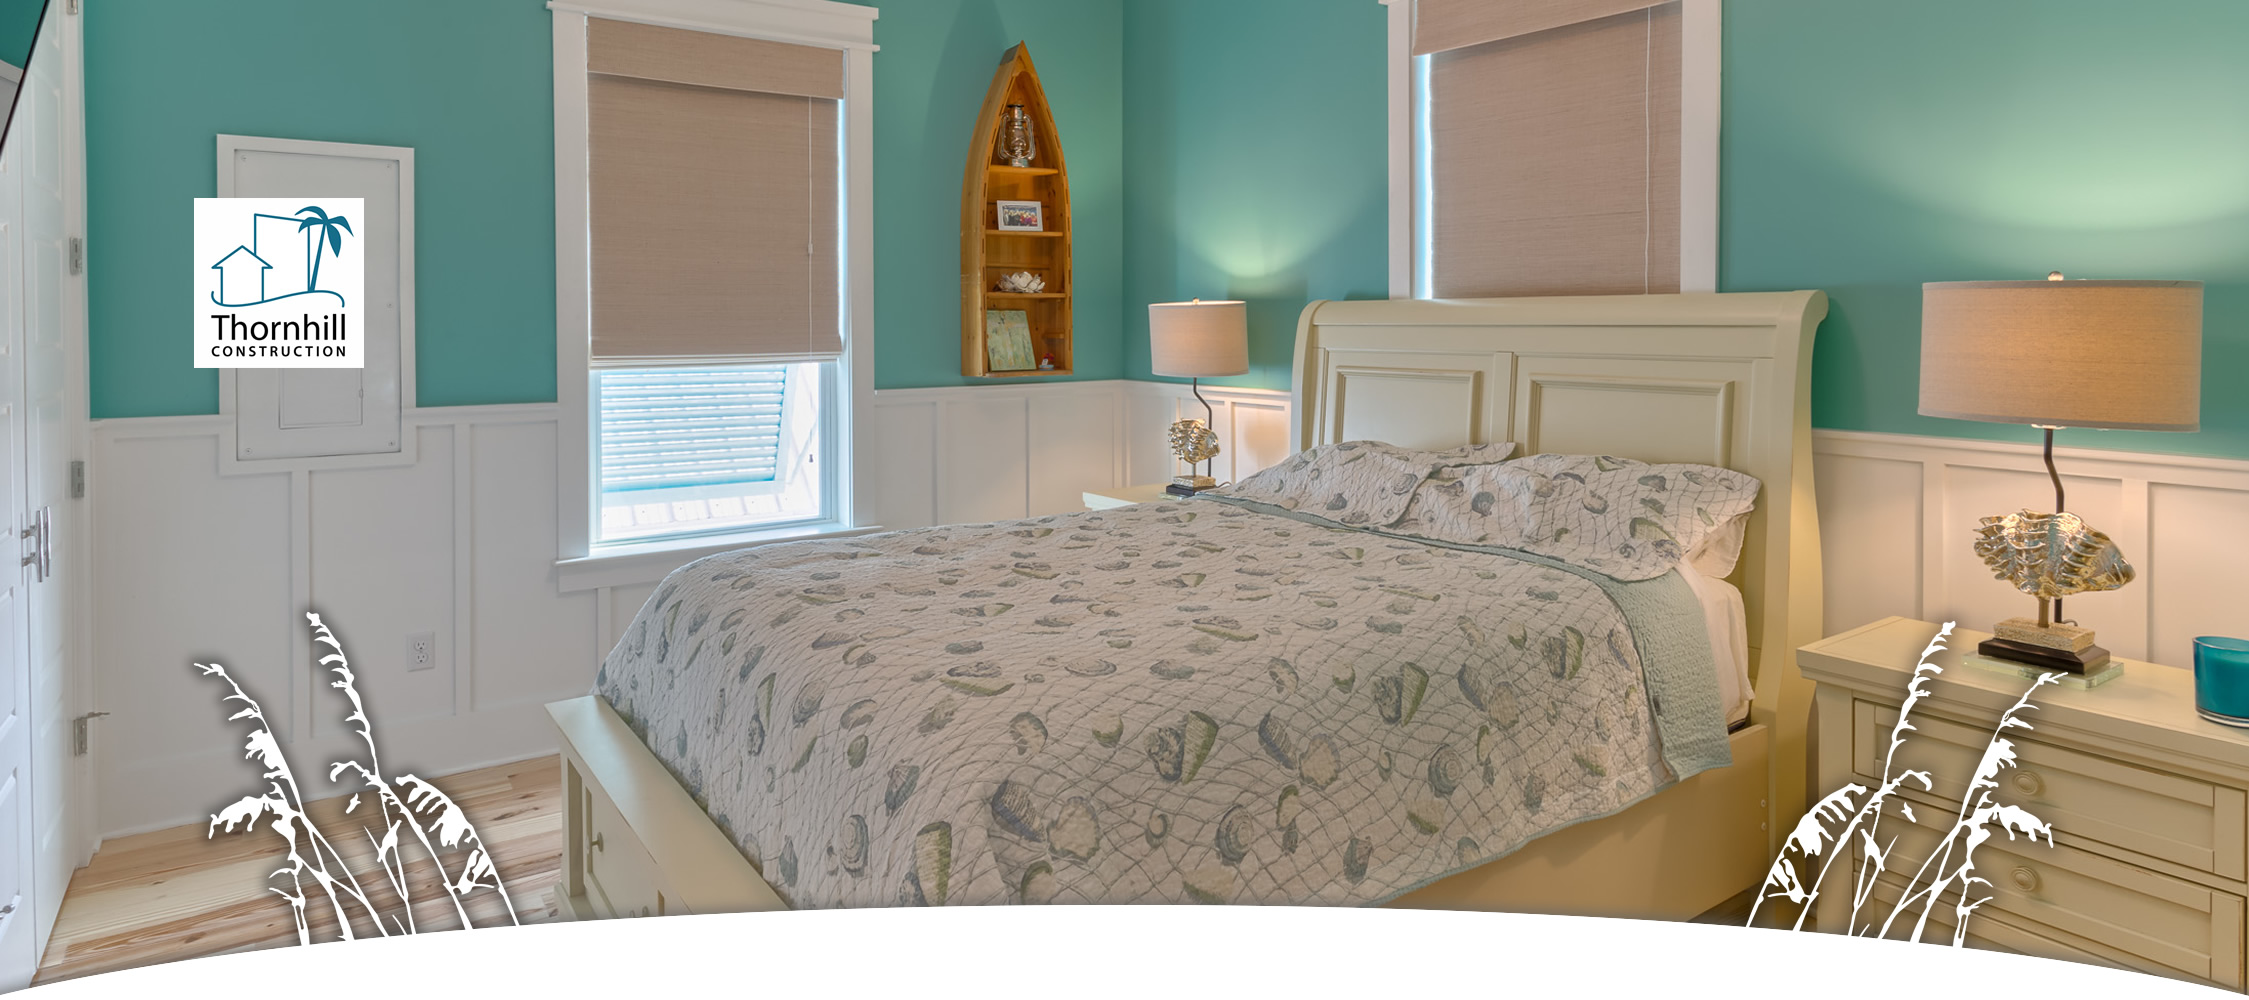 thornhill-new-site-image40